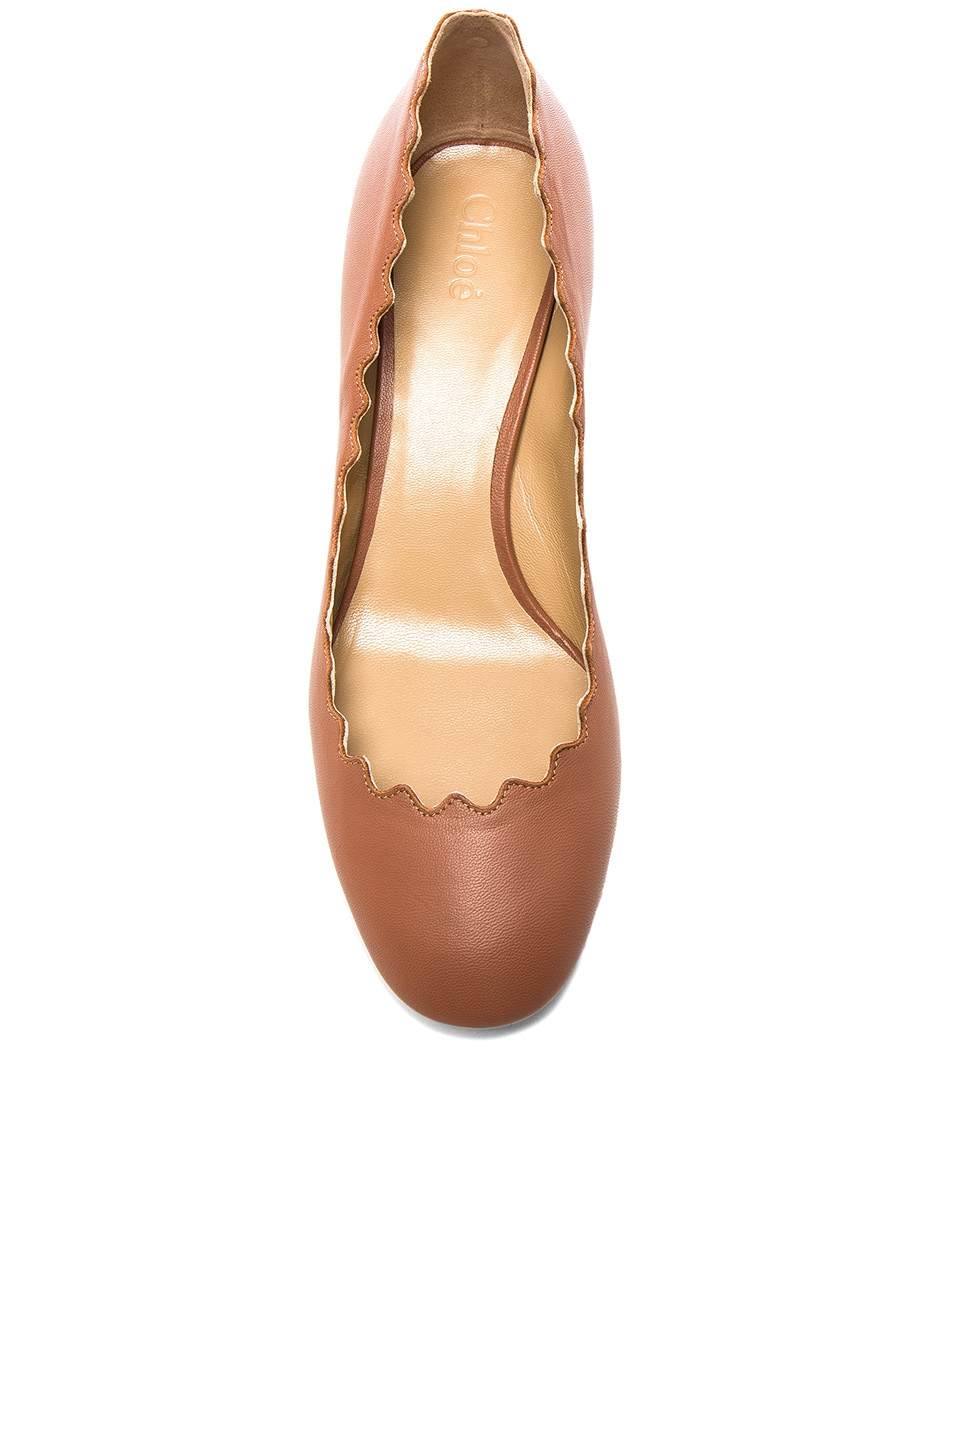 Image 4 of Chloe Lauren Leather Scallop Pumps in Blush Pink